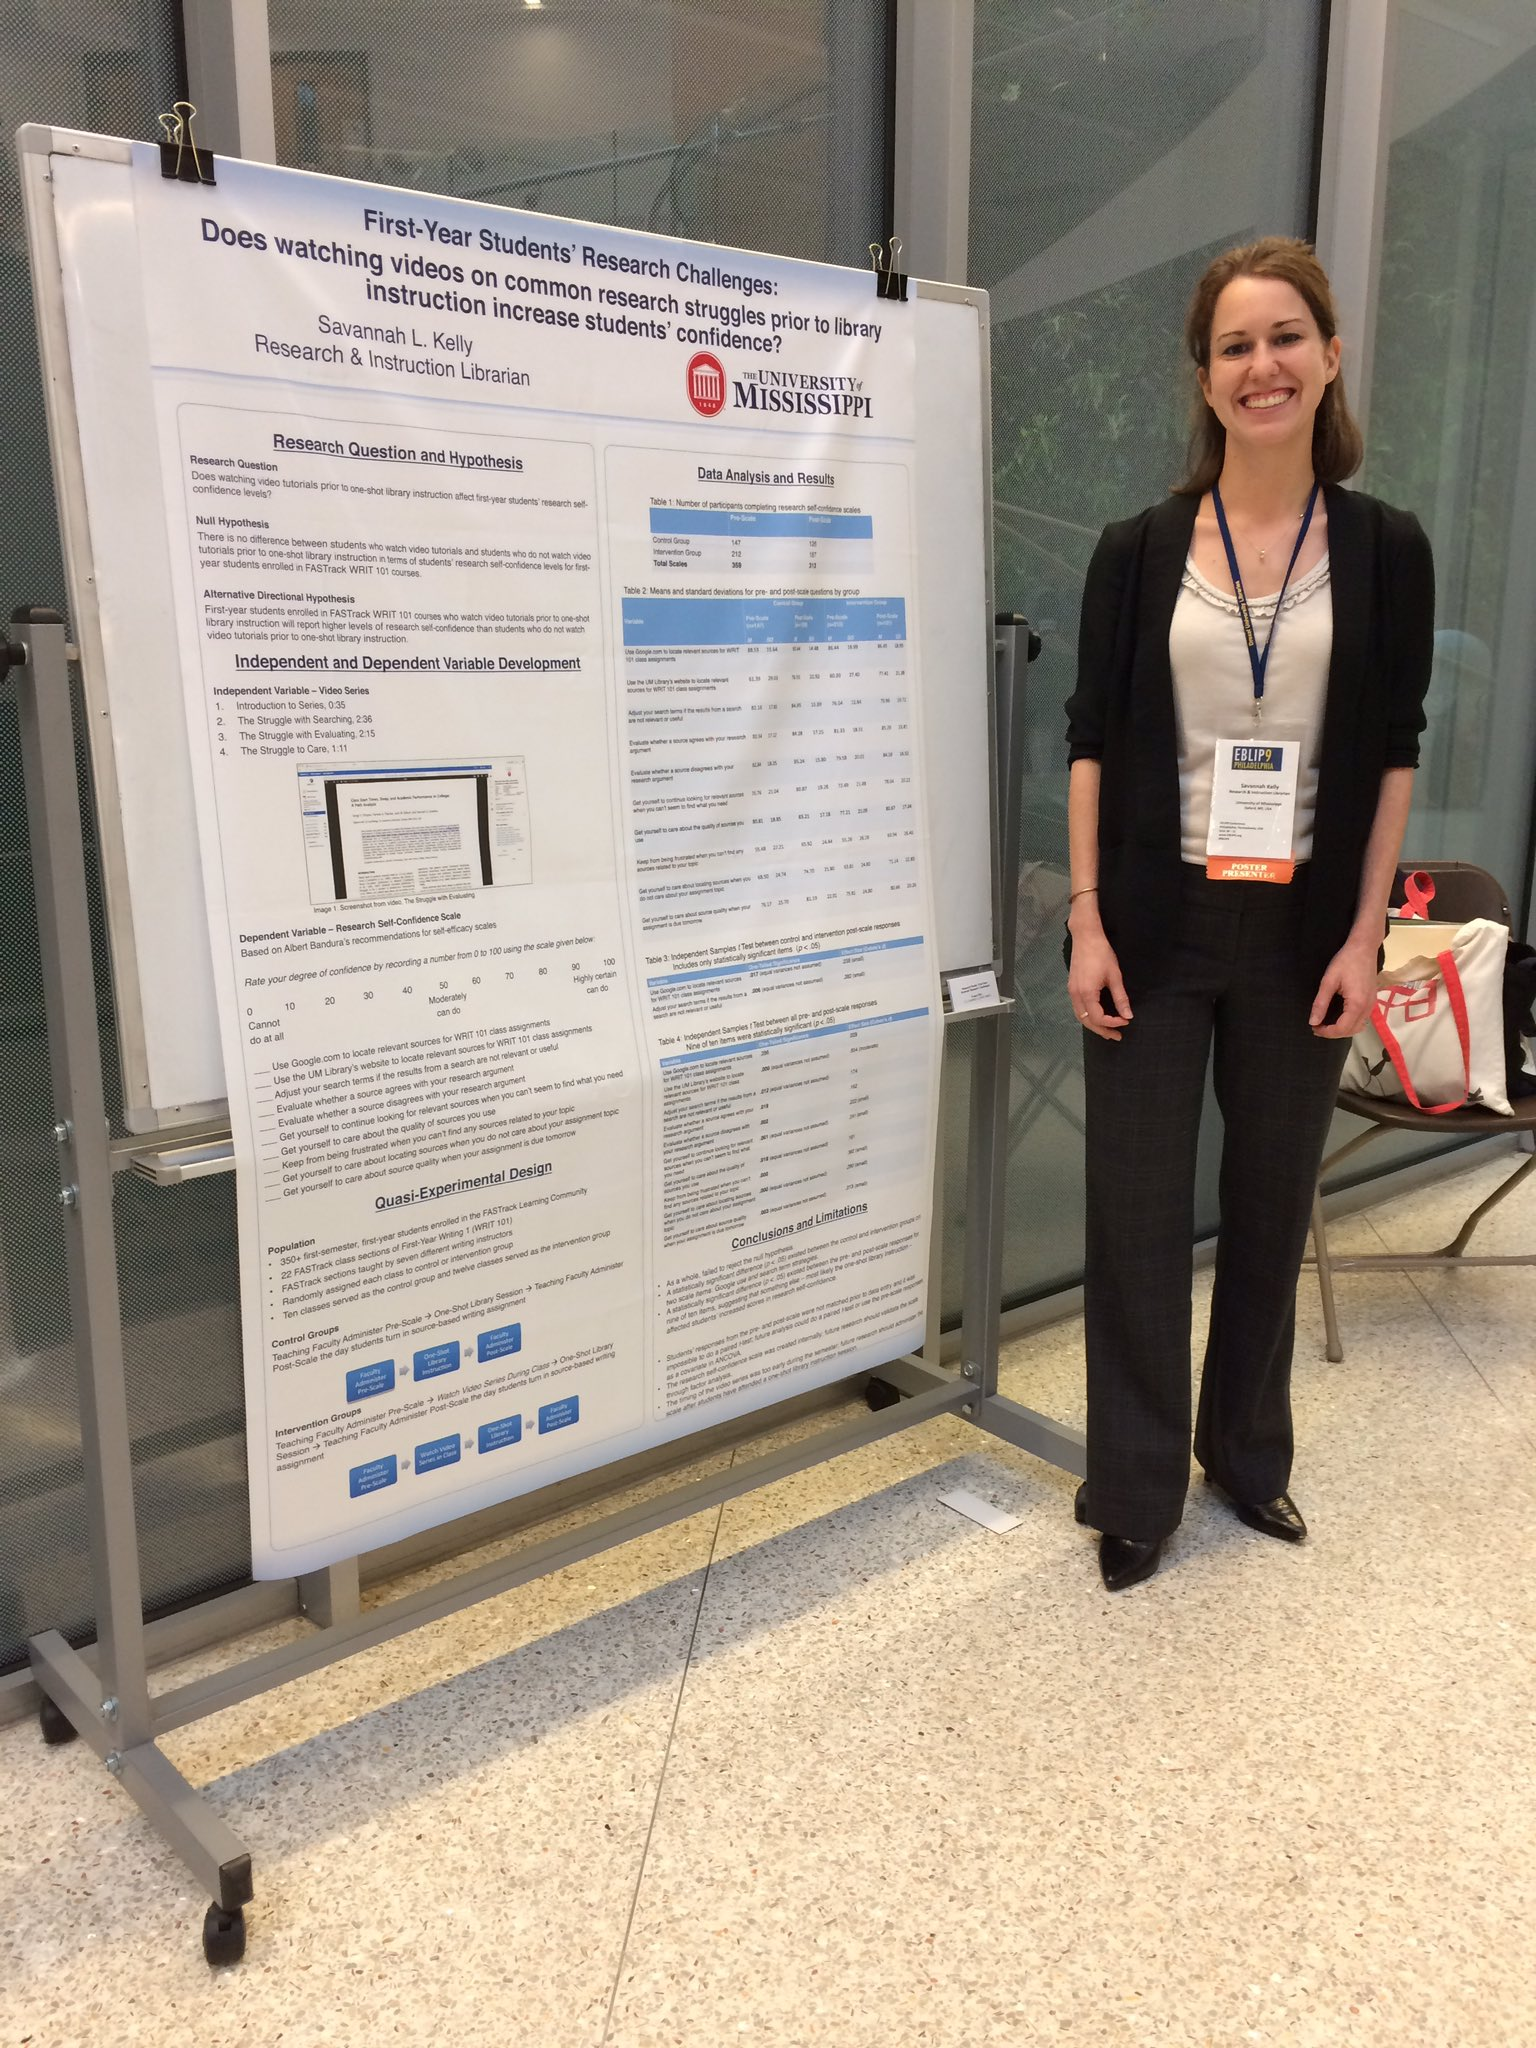 Research & Instuction Librarian Savannah is presenting her research at @eblip9 this week! https://t.co/byNHDyDxGO